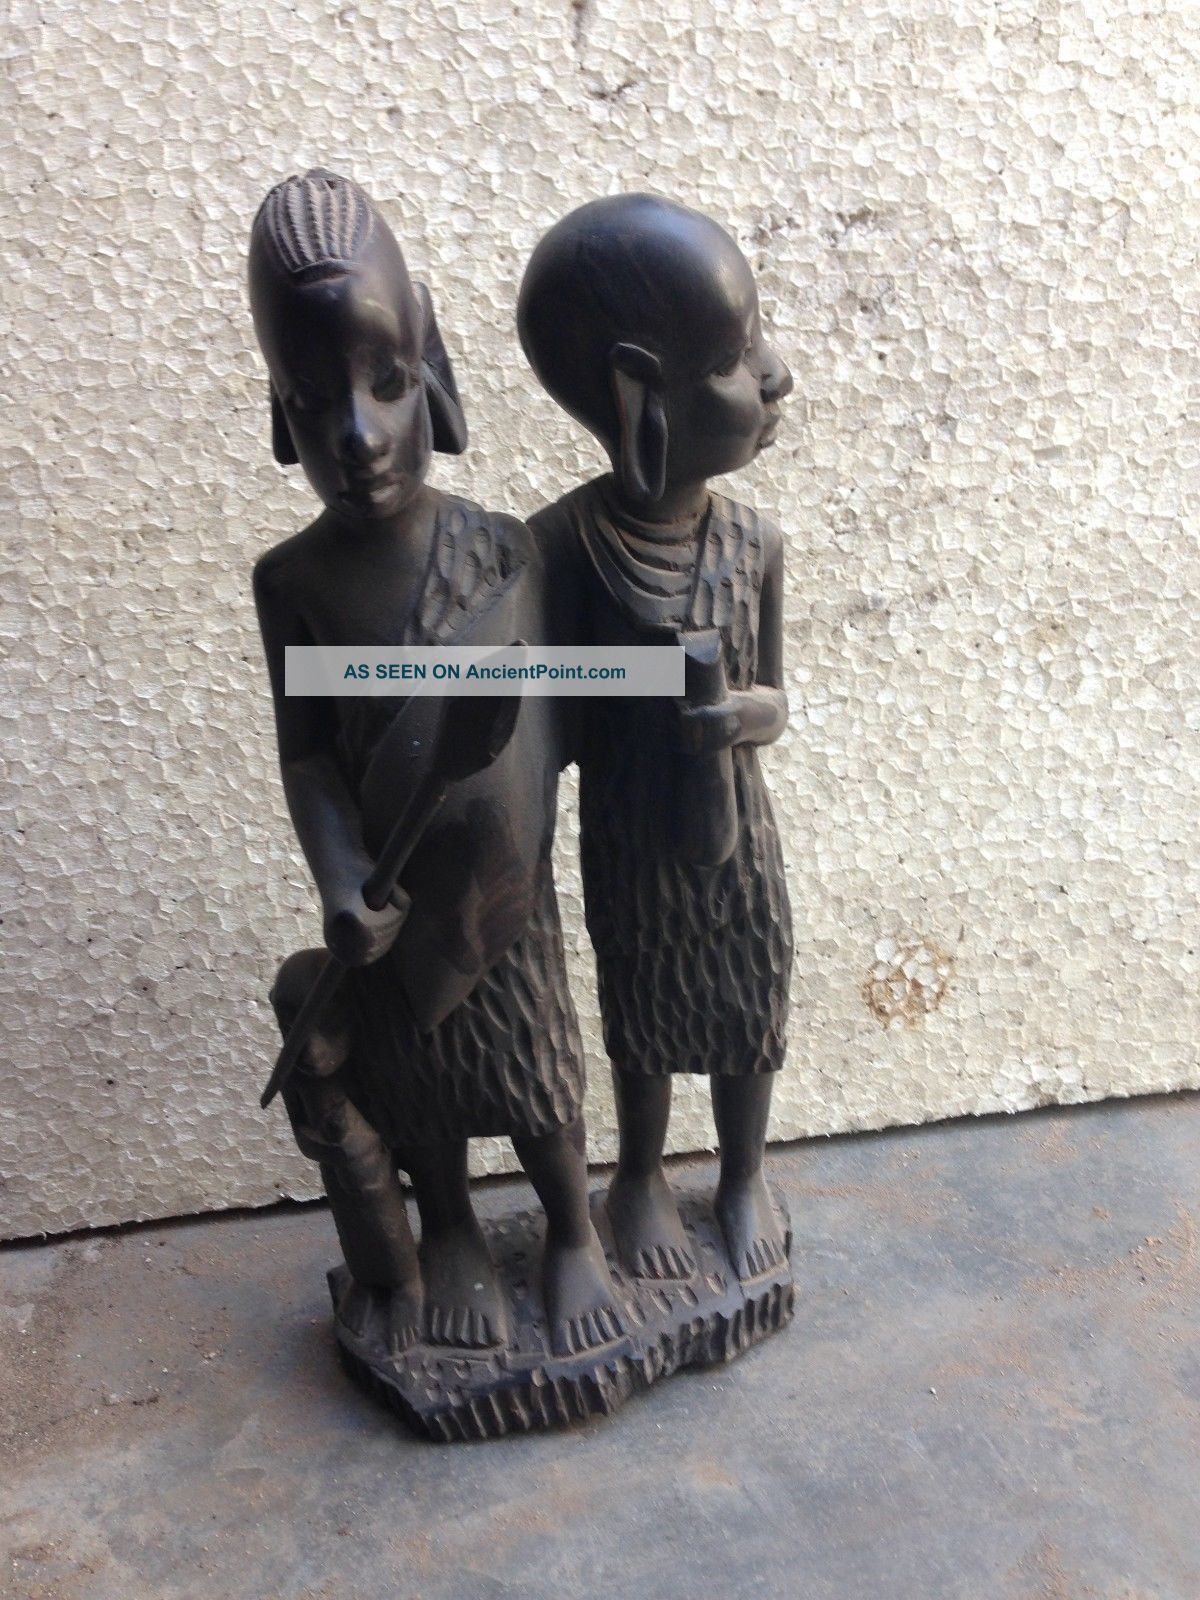 Vintage Antique Rare Rosewood Man And Woman Figure Figurine African Tribal Art Sculptures & Statues photo